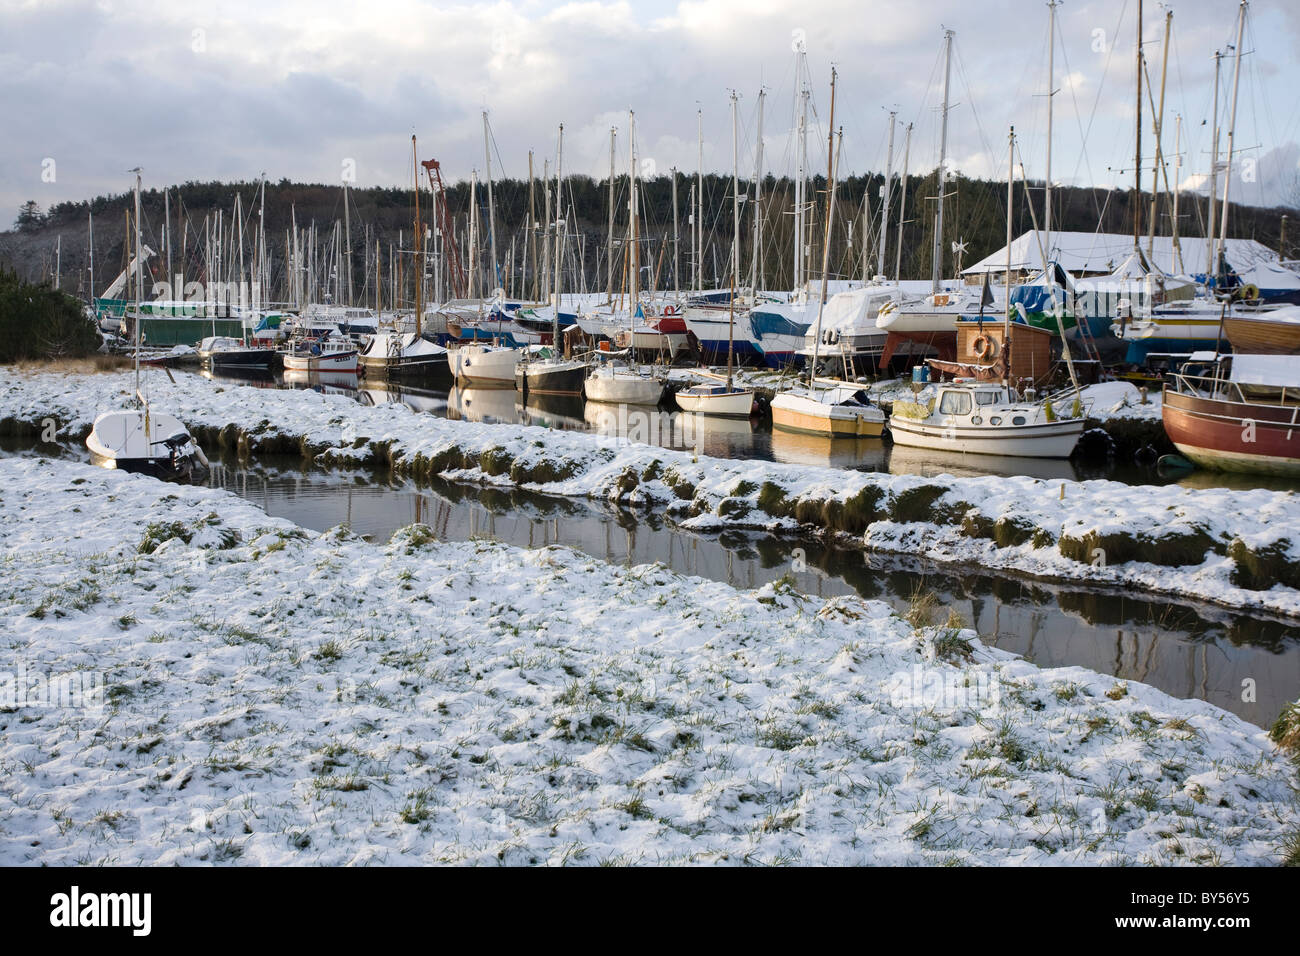 Snow on the ground at the boatyard in Gweek, Cornwall - Stock Image